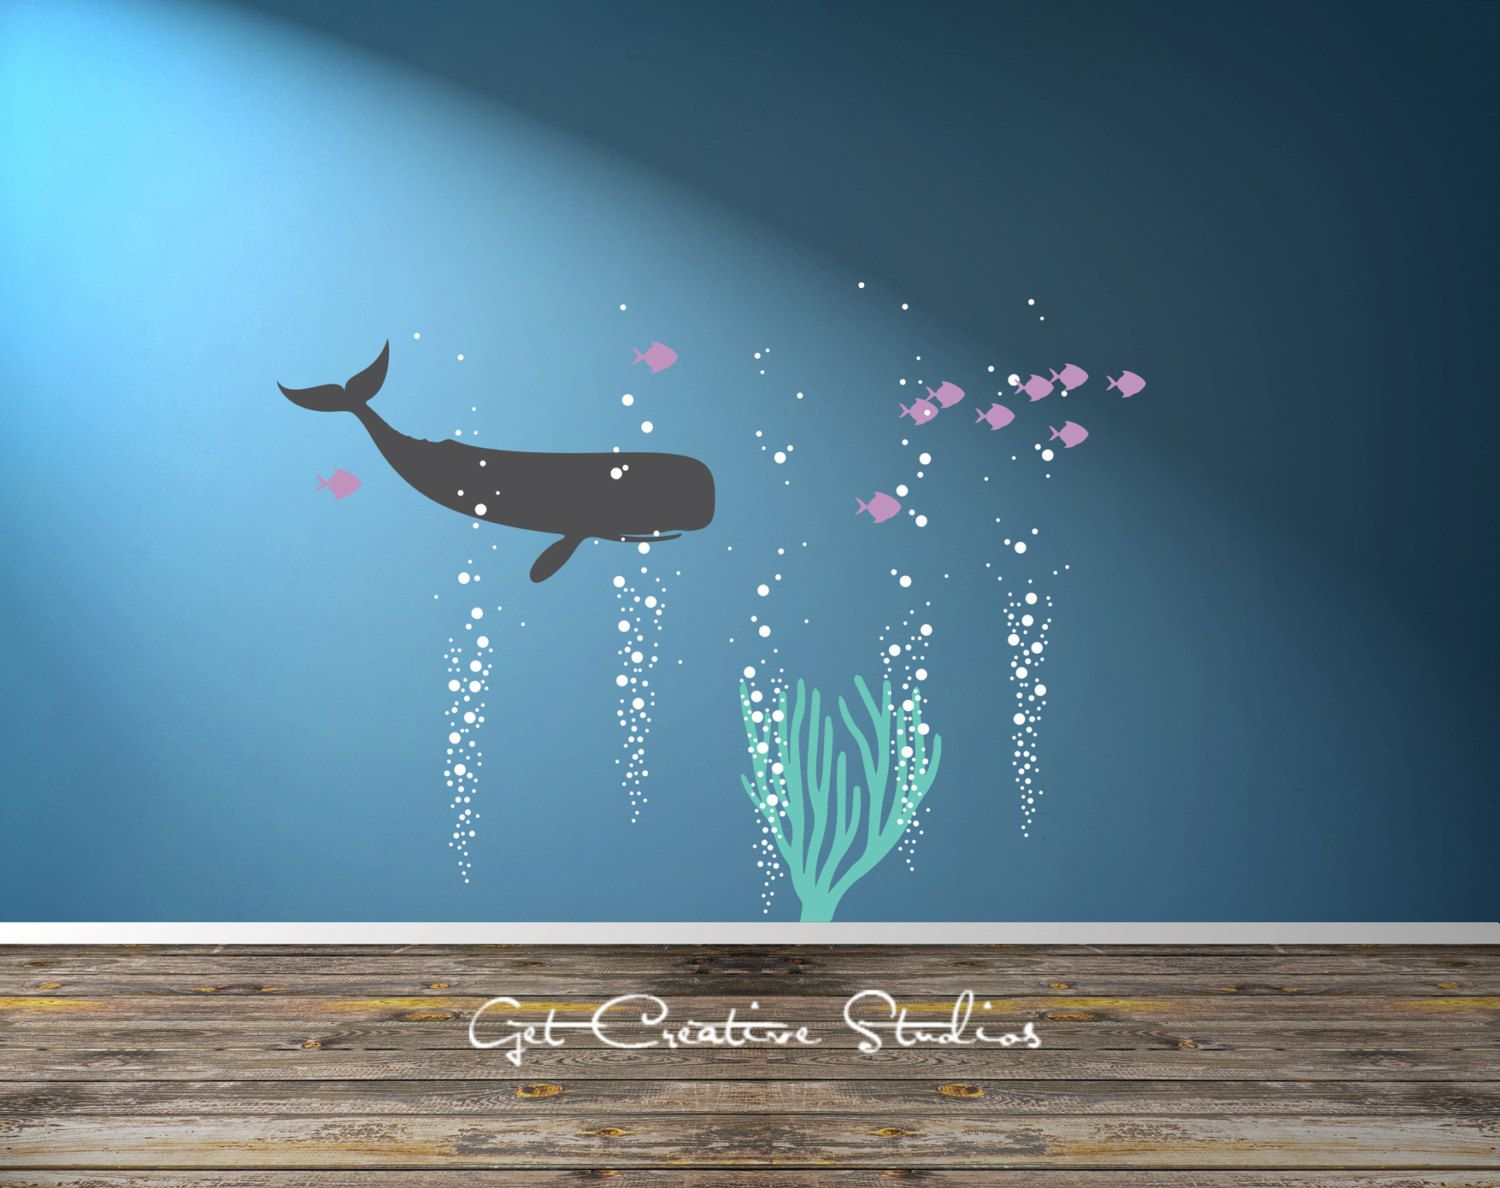 Aquarium bubbles decal school of fish decal ocean scene wall art whale decal school of fish decal ocean scene wall art underwater bubble wall decal nautical theme ocean nursery nautical baby room decal amipublicfo Gallery